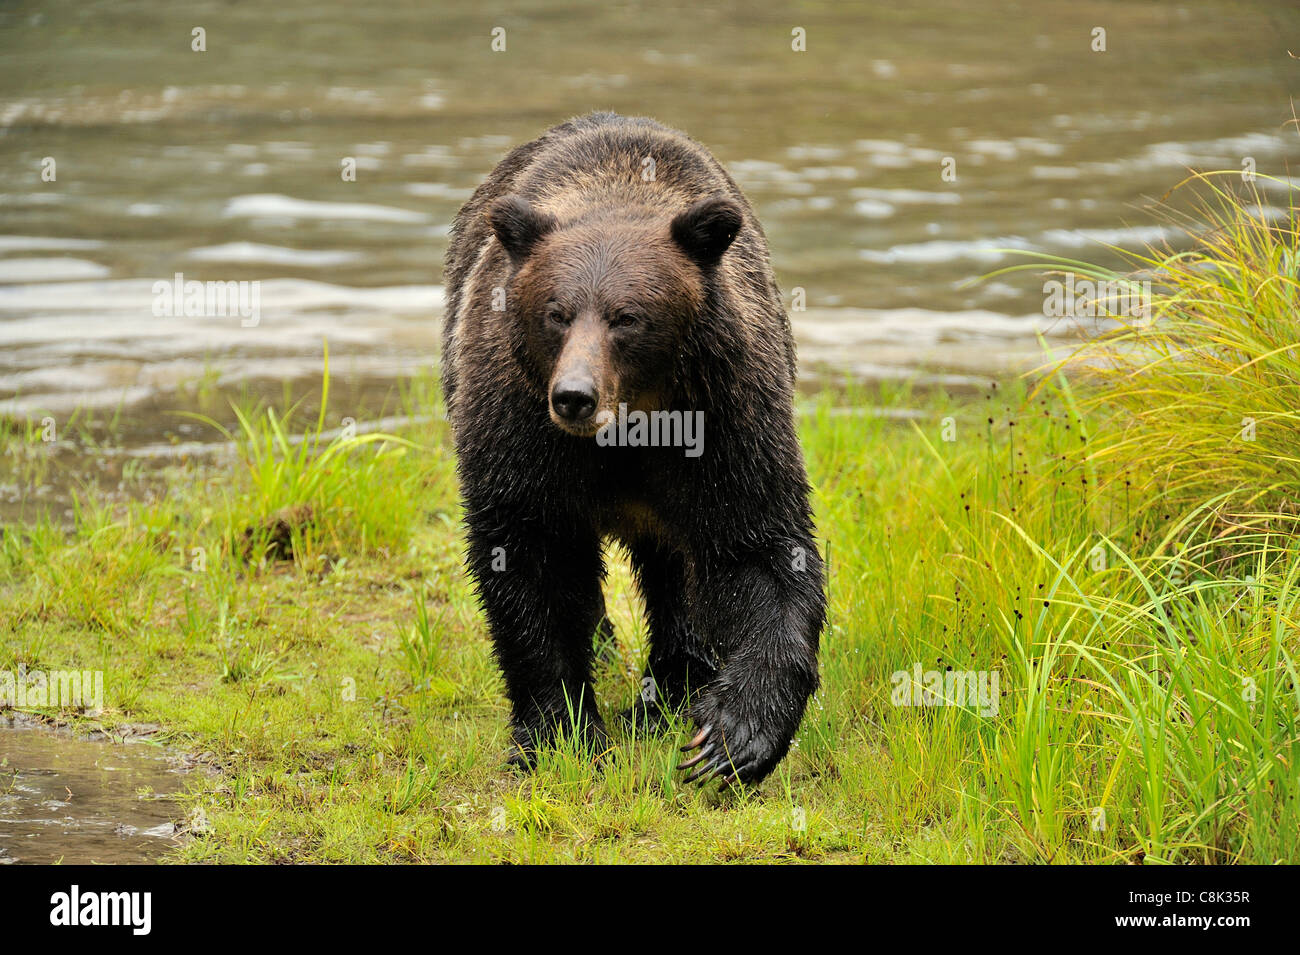 A grizzly bear walking forward - Stock Image